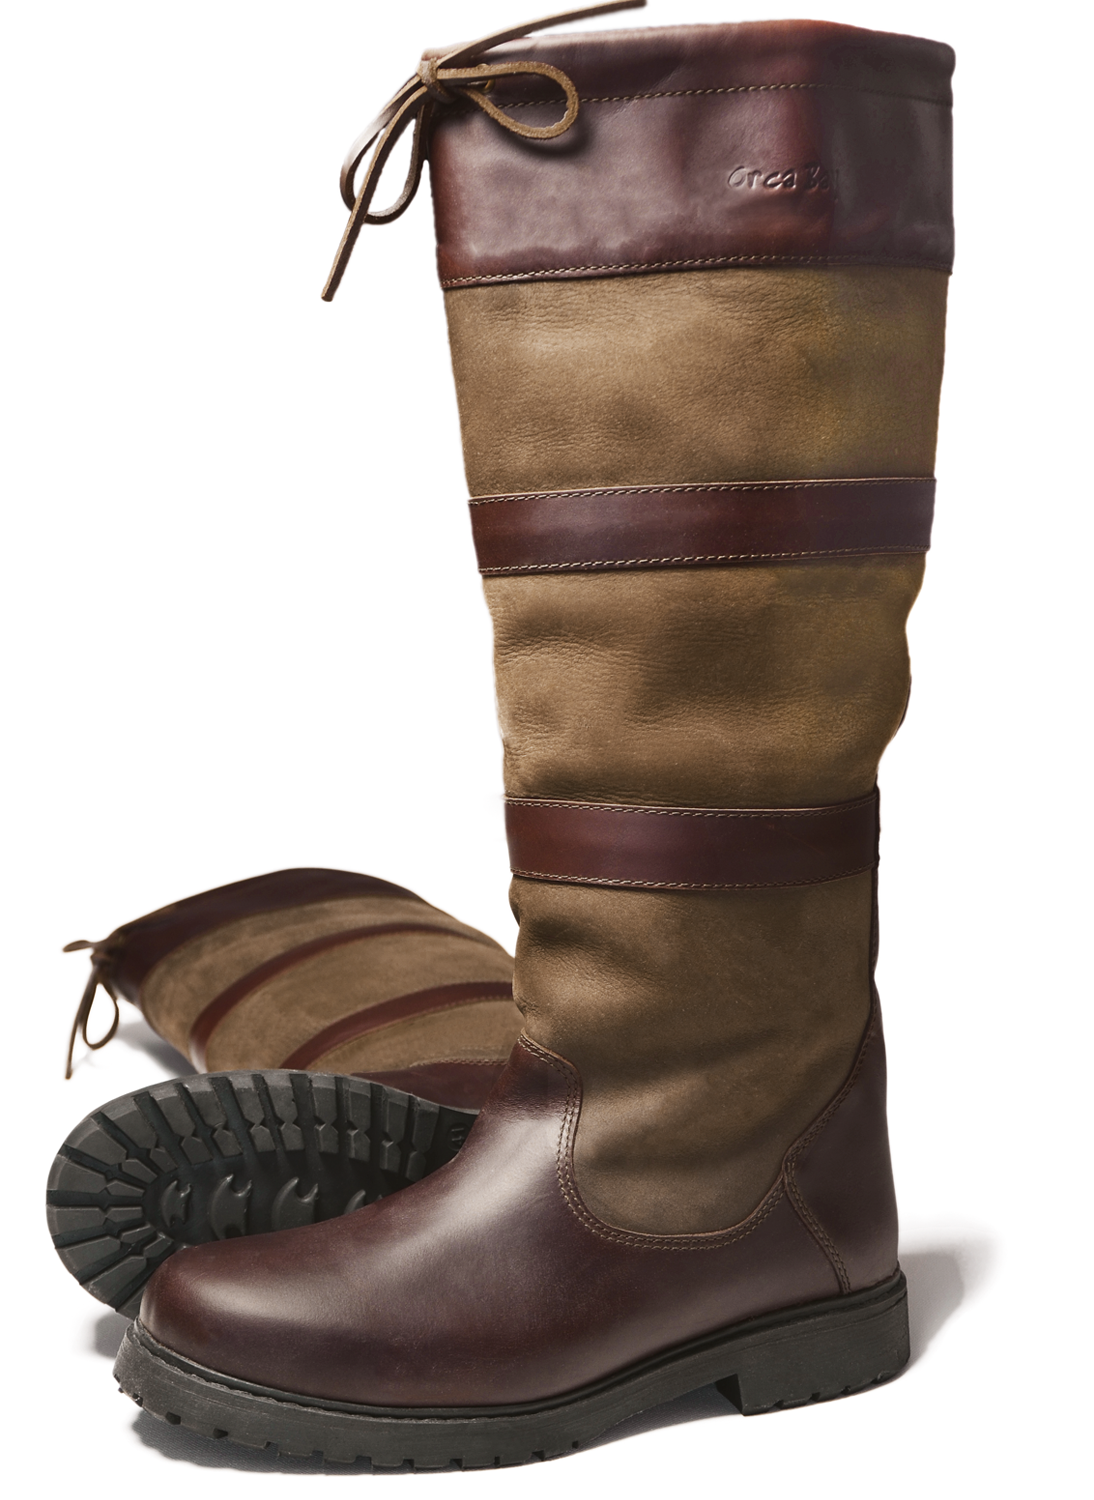 b4b4f5b190f6d Orca Bay Orkney Waterproof Boots - Bredon Hill Country